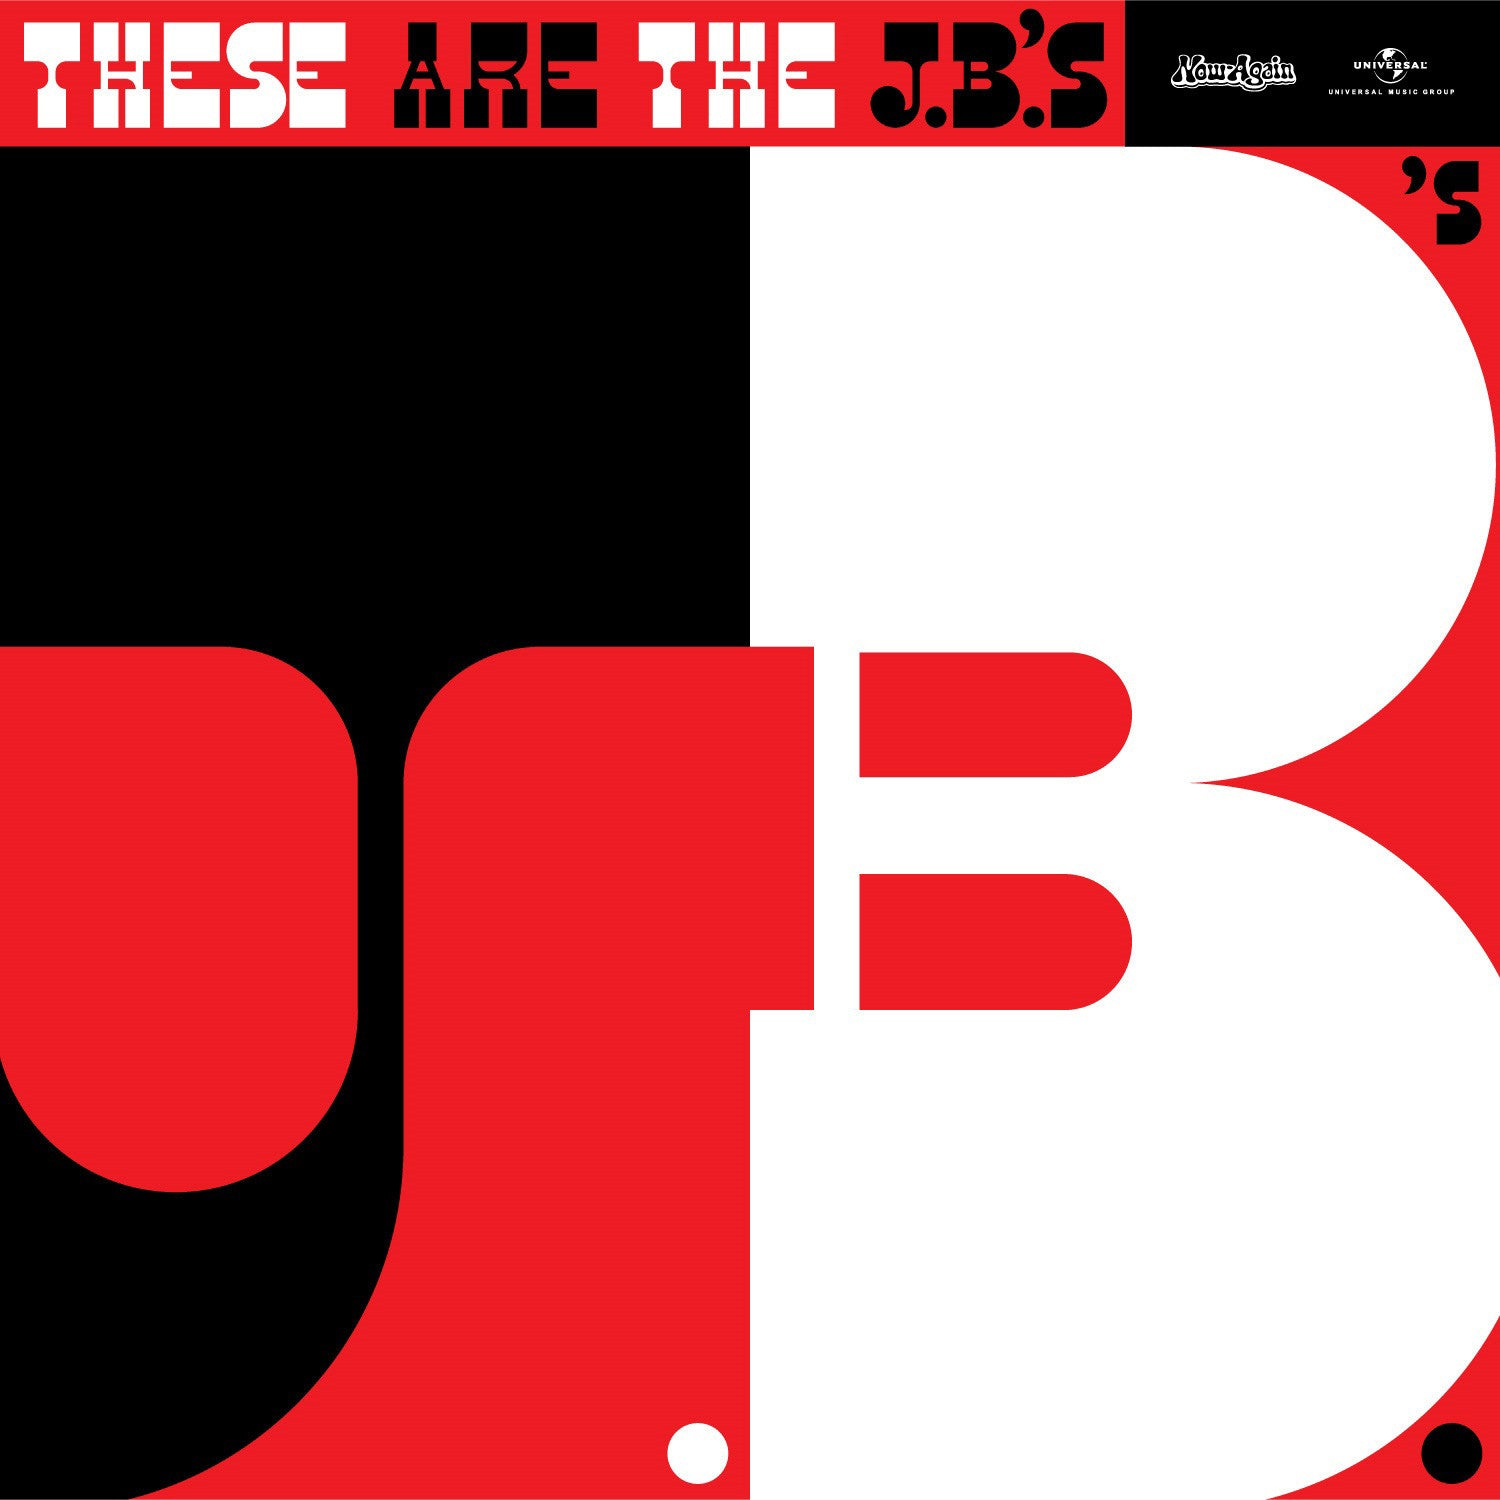 JB's - These Are The J.B.'s, Vinyl LP - The Giant Peach